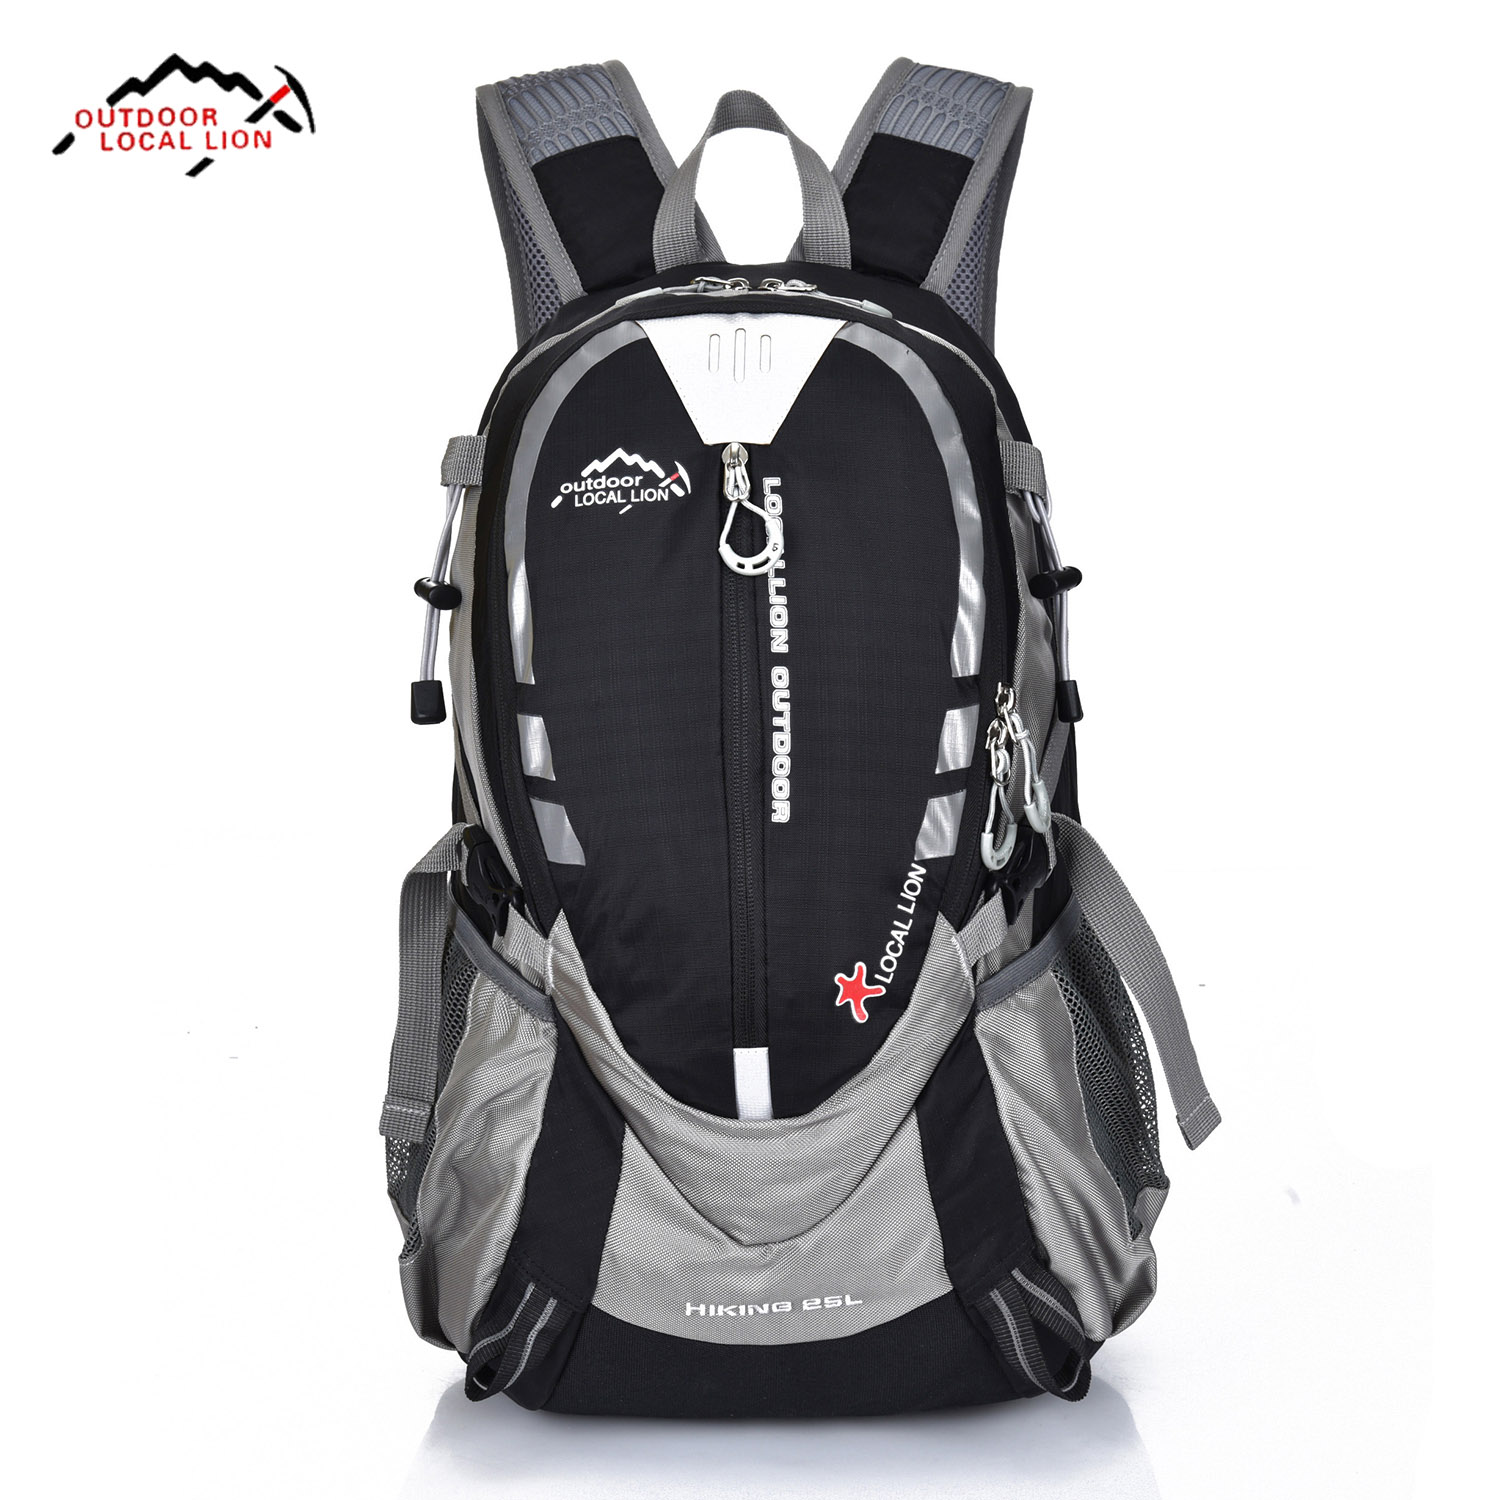 Outdoor 25L Hiking Backpack Waterproof Nylon Man Cycling Bags Women <font><b>Mountaineer</b></font> Camping Bag Unisex Sport Trekking Backpacks